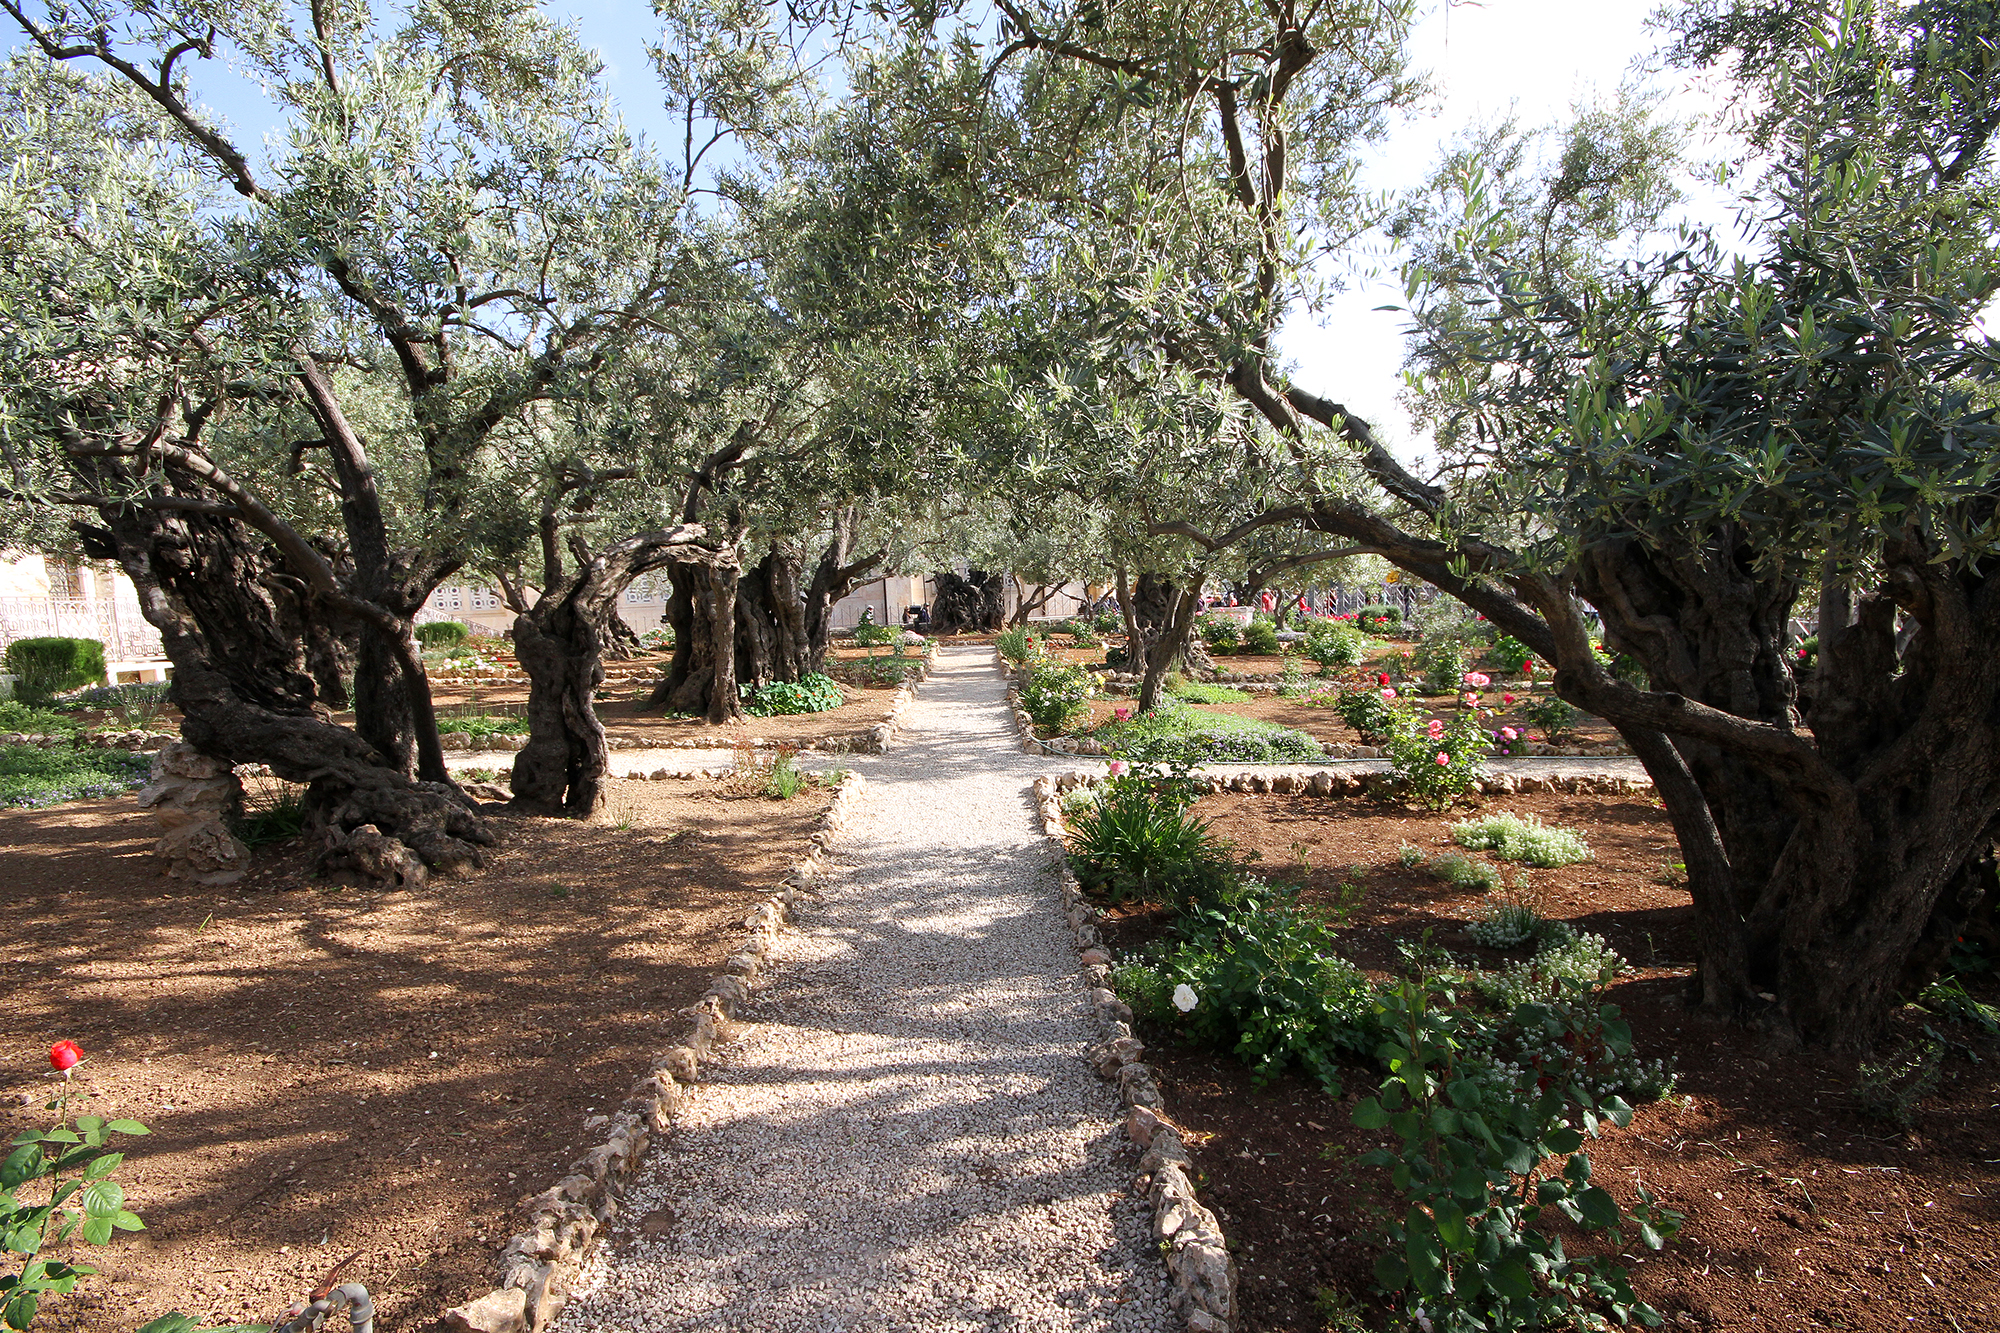 Church of Gethsemane